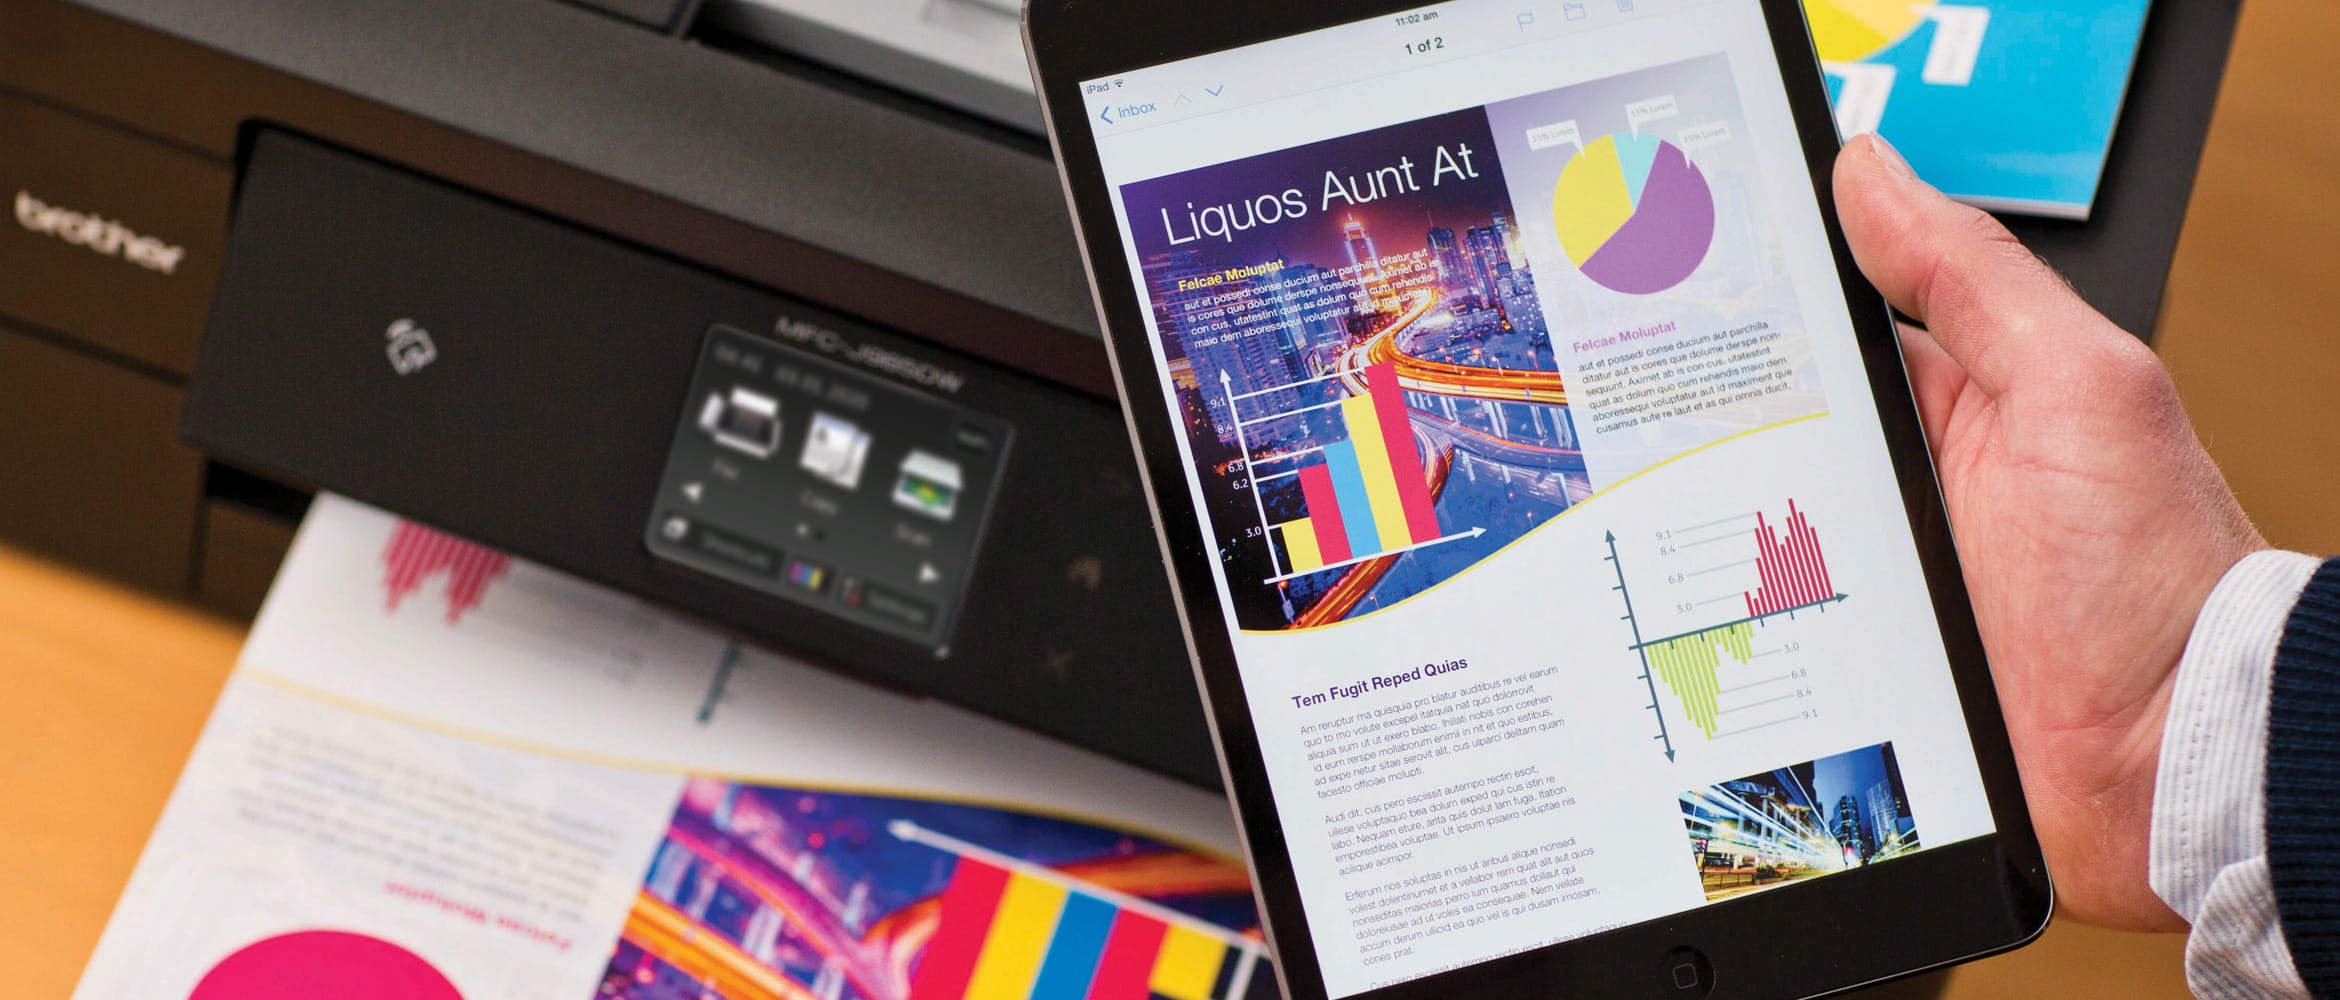 Man uses Brother printer to print documents off his tablet